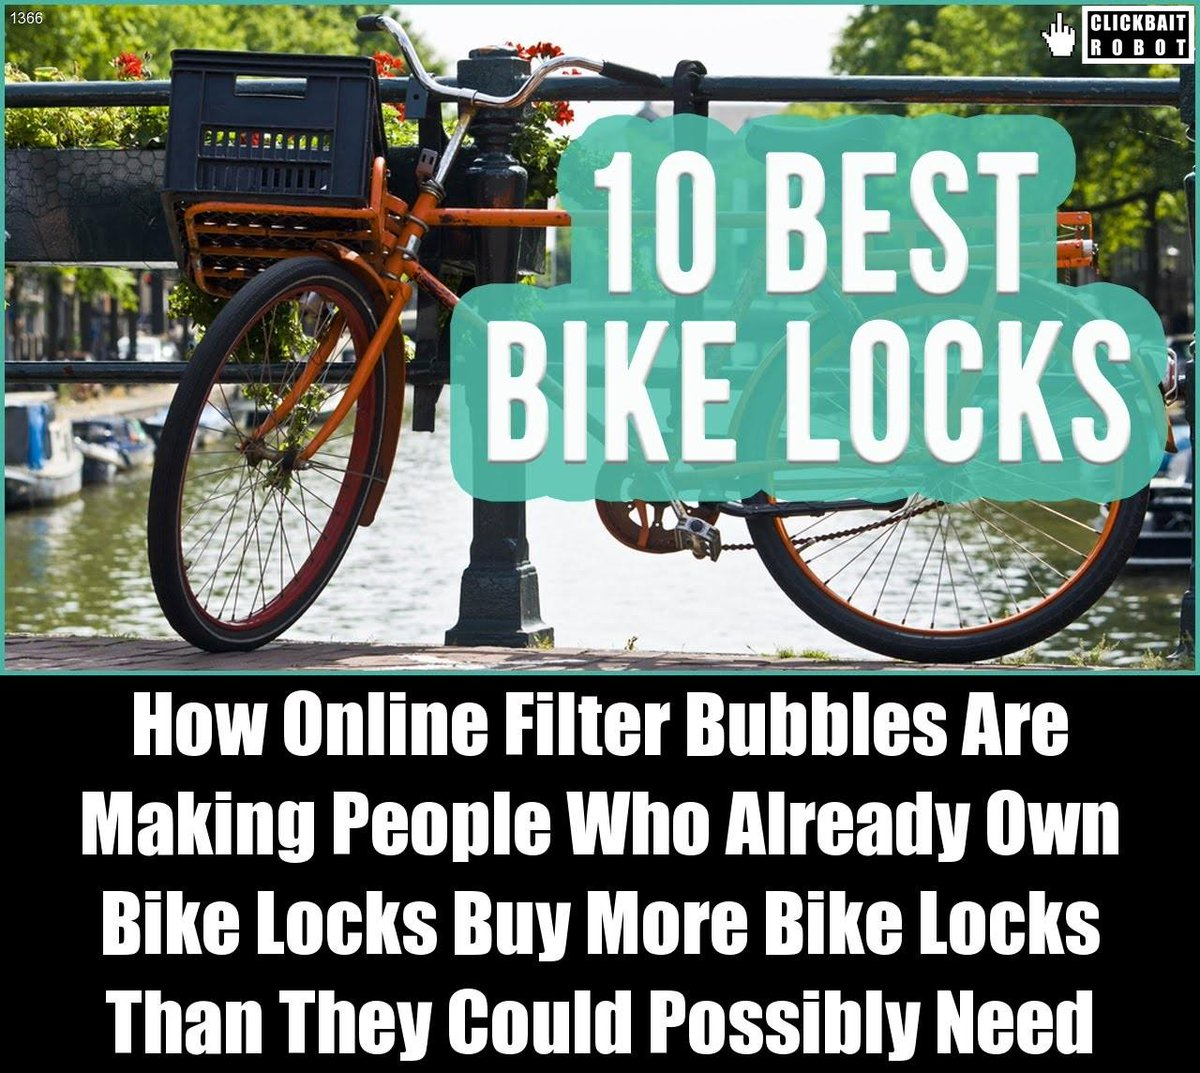 How Online Filter Bubbles Are Making >> Clickbait Robot On Twitter How Online Filter Bubbles Are Making